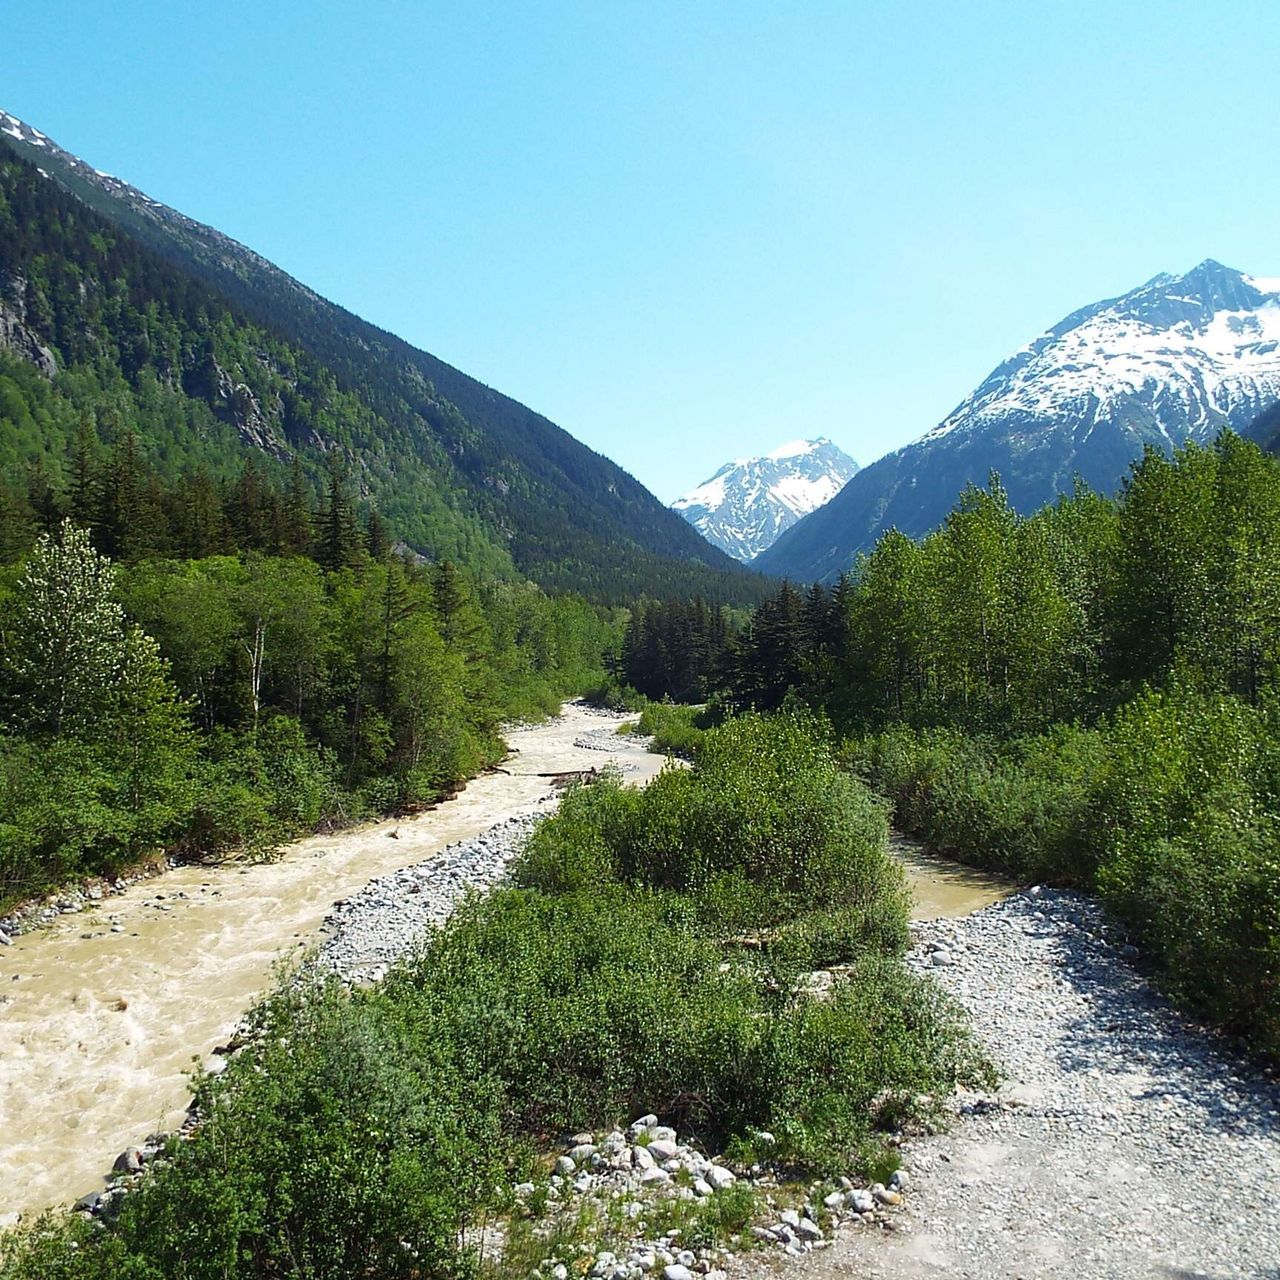 River of Silt Skagway Alaska Glacier Melt Mountain Tranquil Scene Tranquility Scenics Nature Beauty In Nature Mountain Range Tree Growth Road Green Color Landscape Clear Sky Day No People Outdoors Plant Winding Road Forest